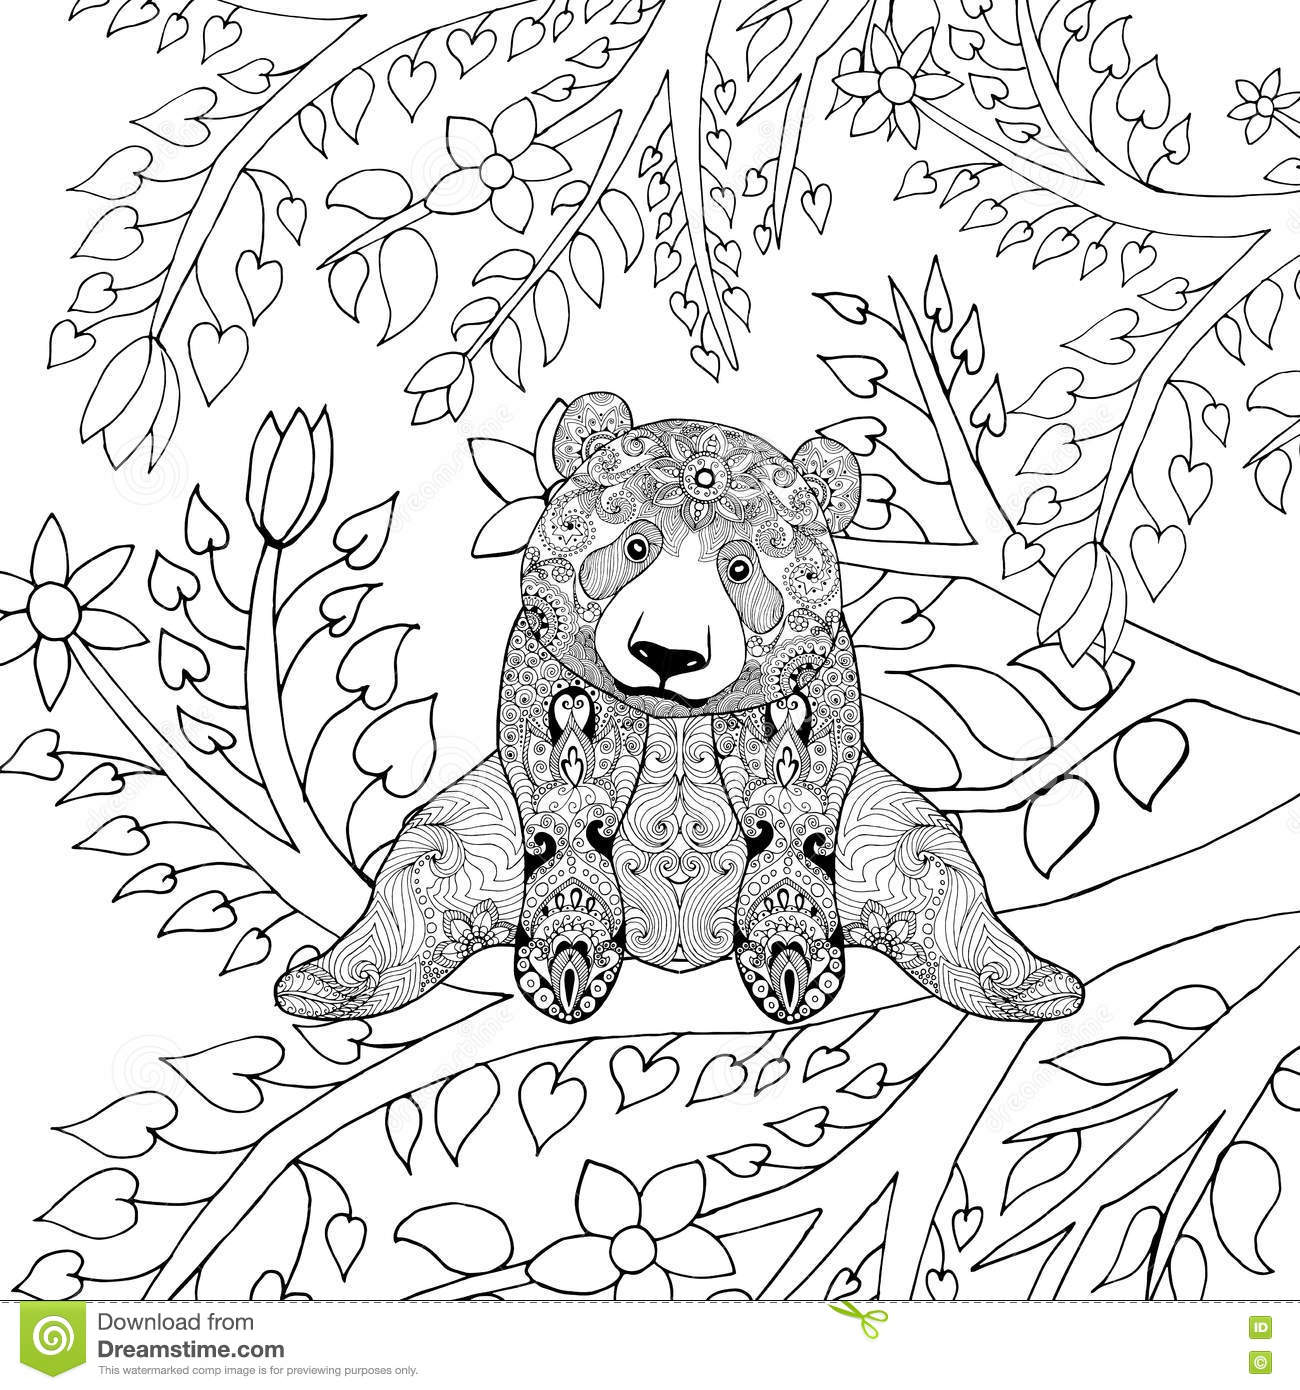 Patterned Cartoons Illustrations Amp Vector Stock Images